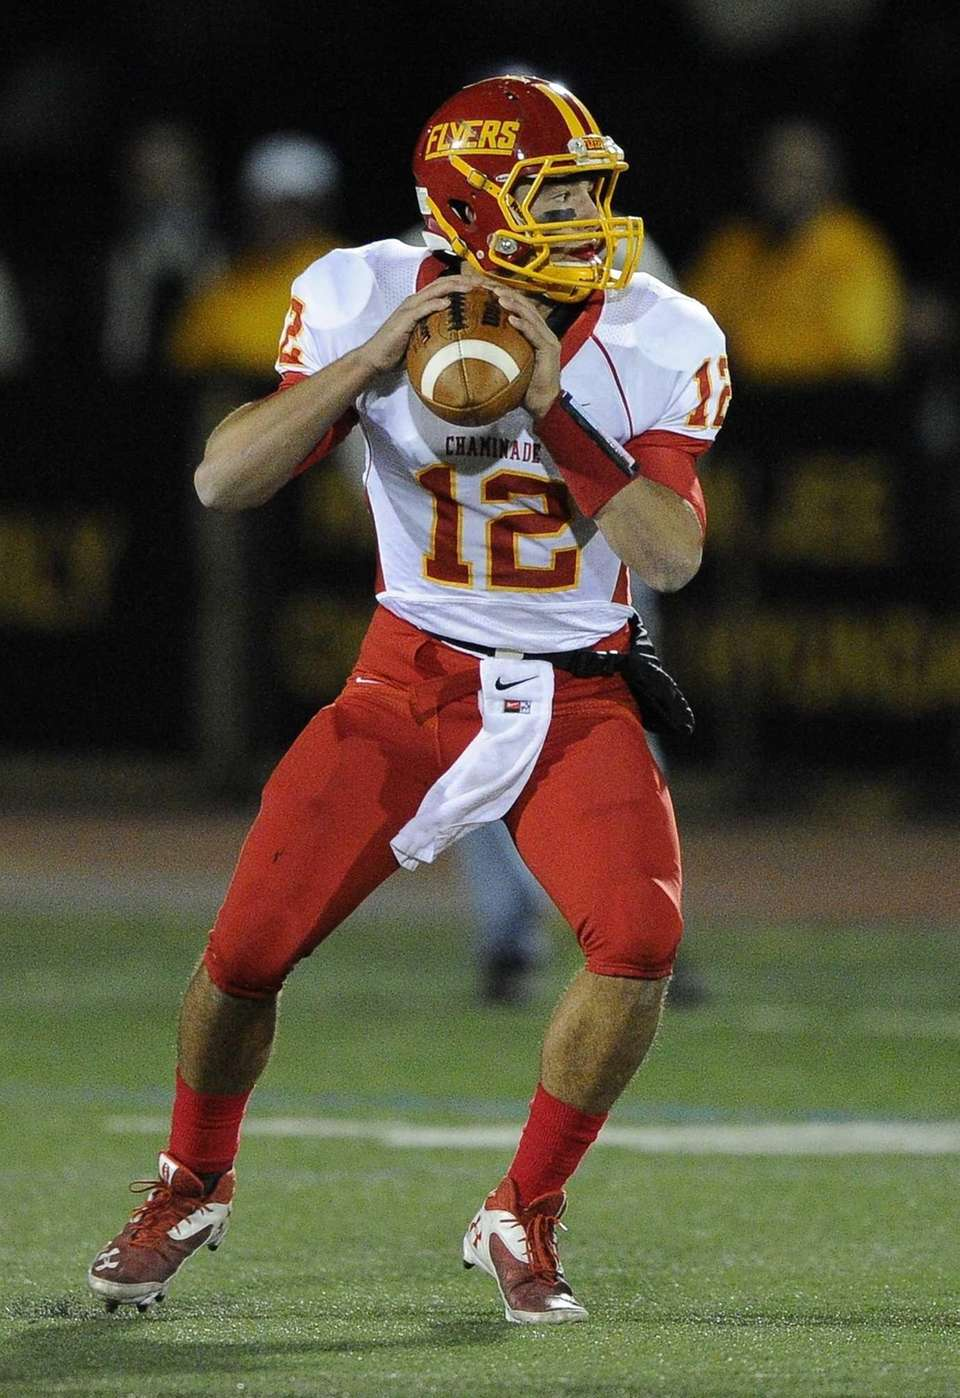 Chaminade quarterback Sean Cerrone looks to pass against